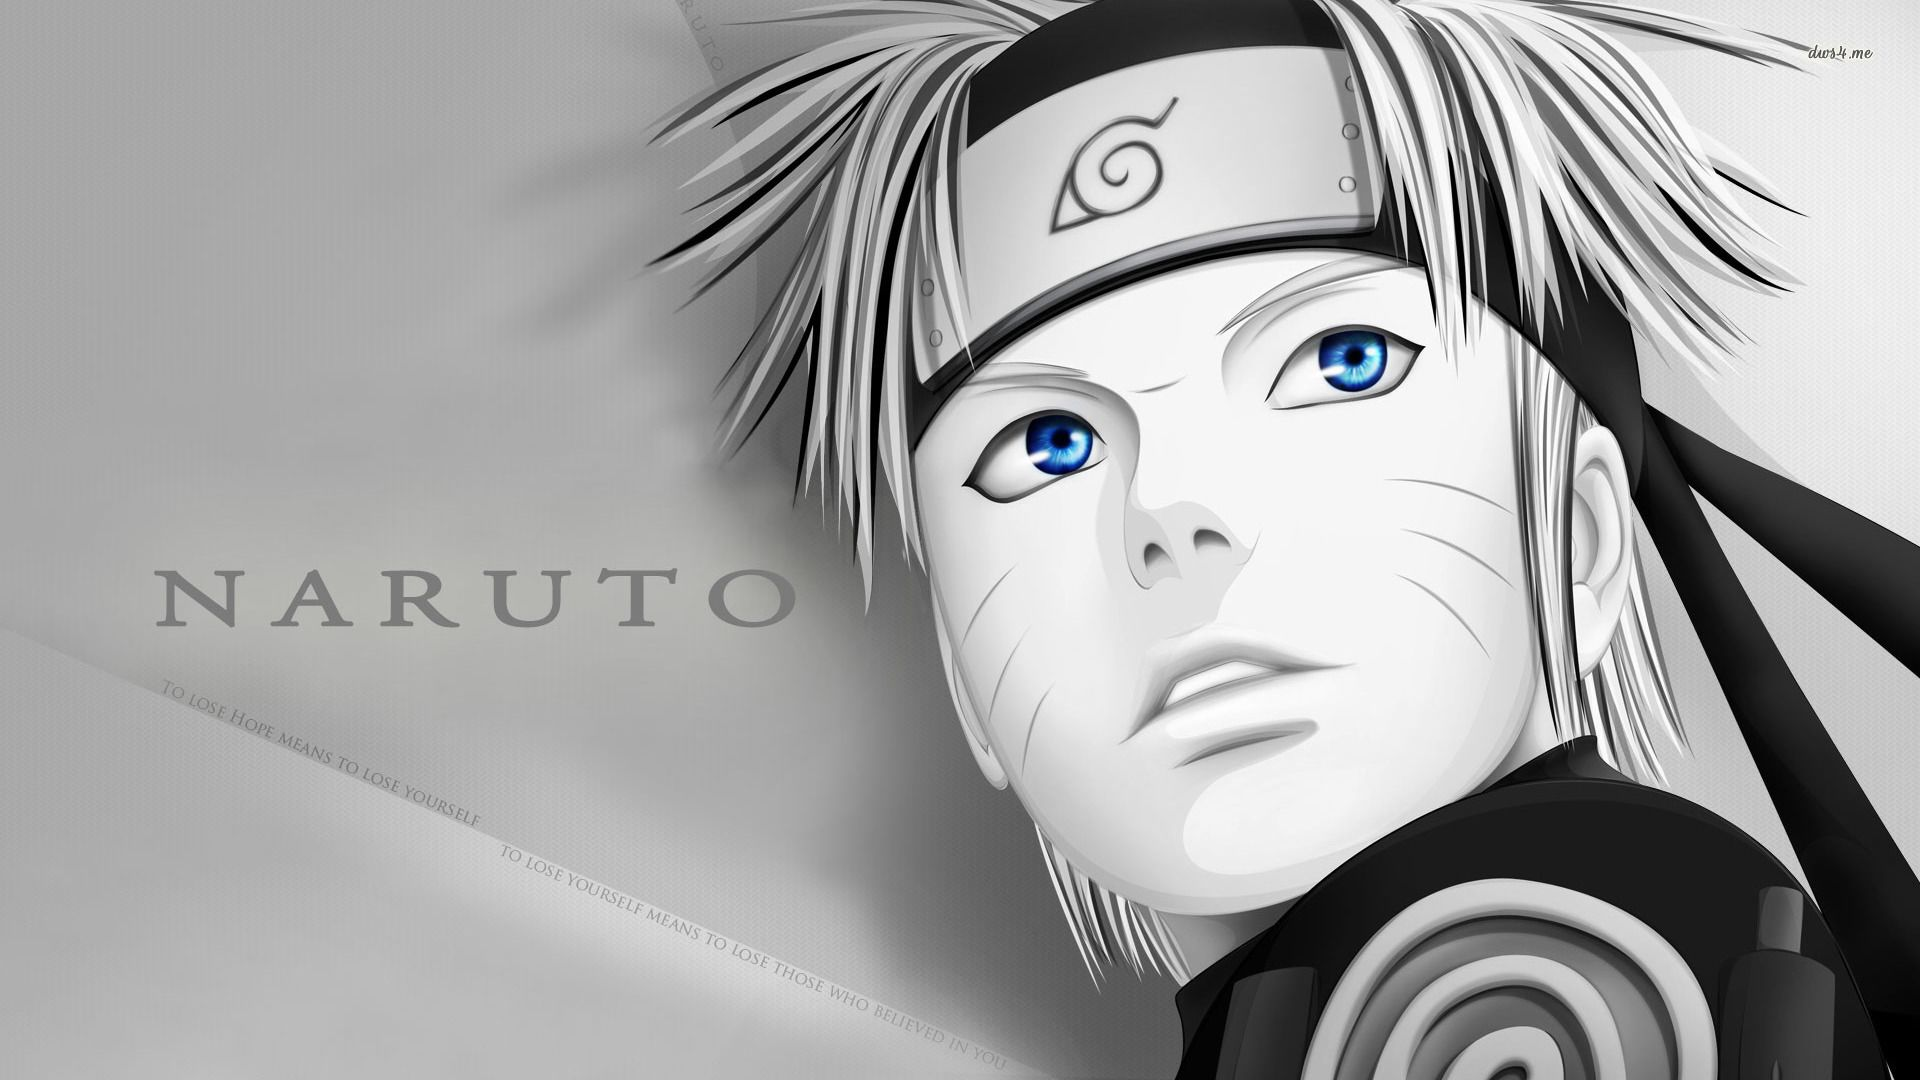 Naruto Black And White Hd Wallpaper Mpx Mxp Naruto Bw Computer